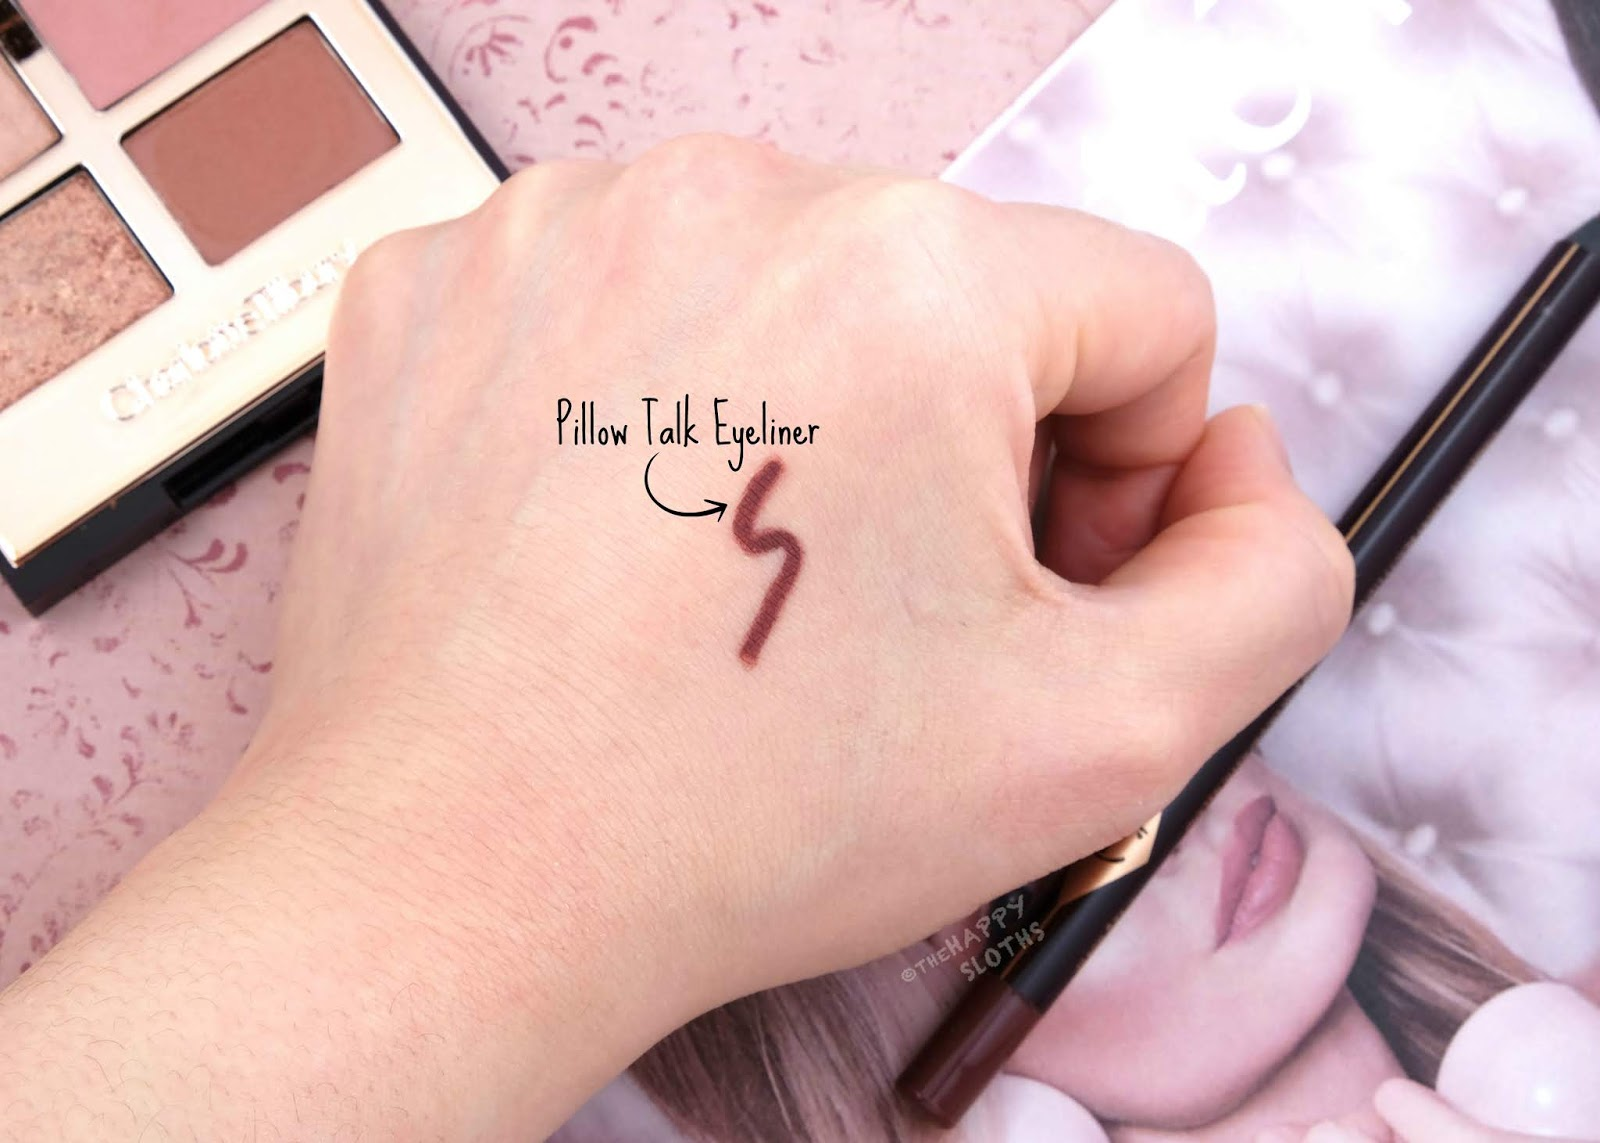 Charlotte Tilbury | Pillow Talk Eyeliner: Review and Swatches